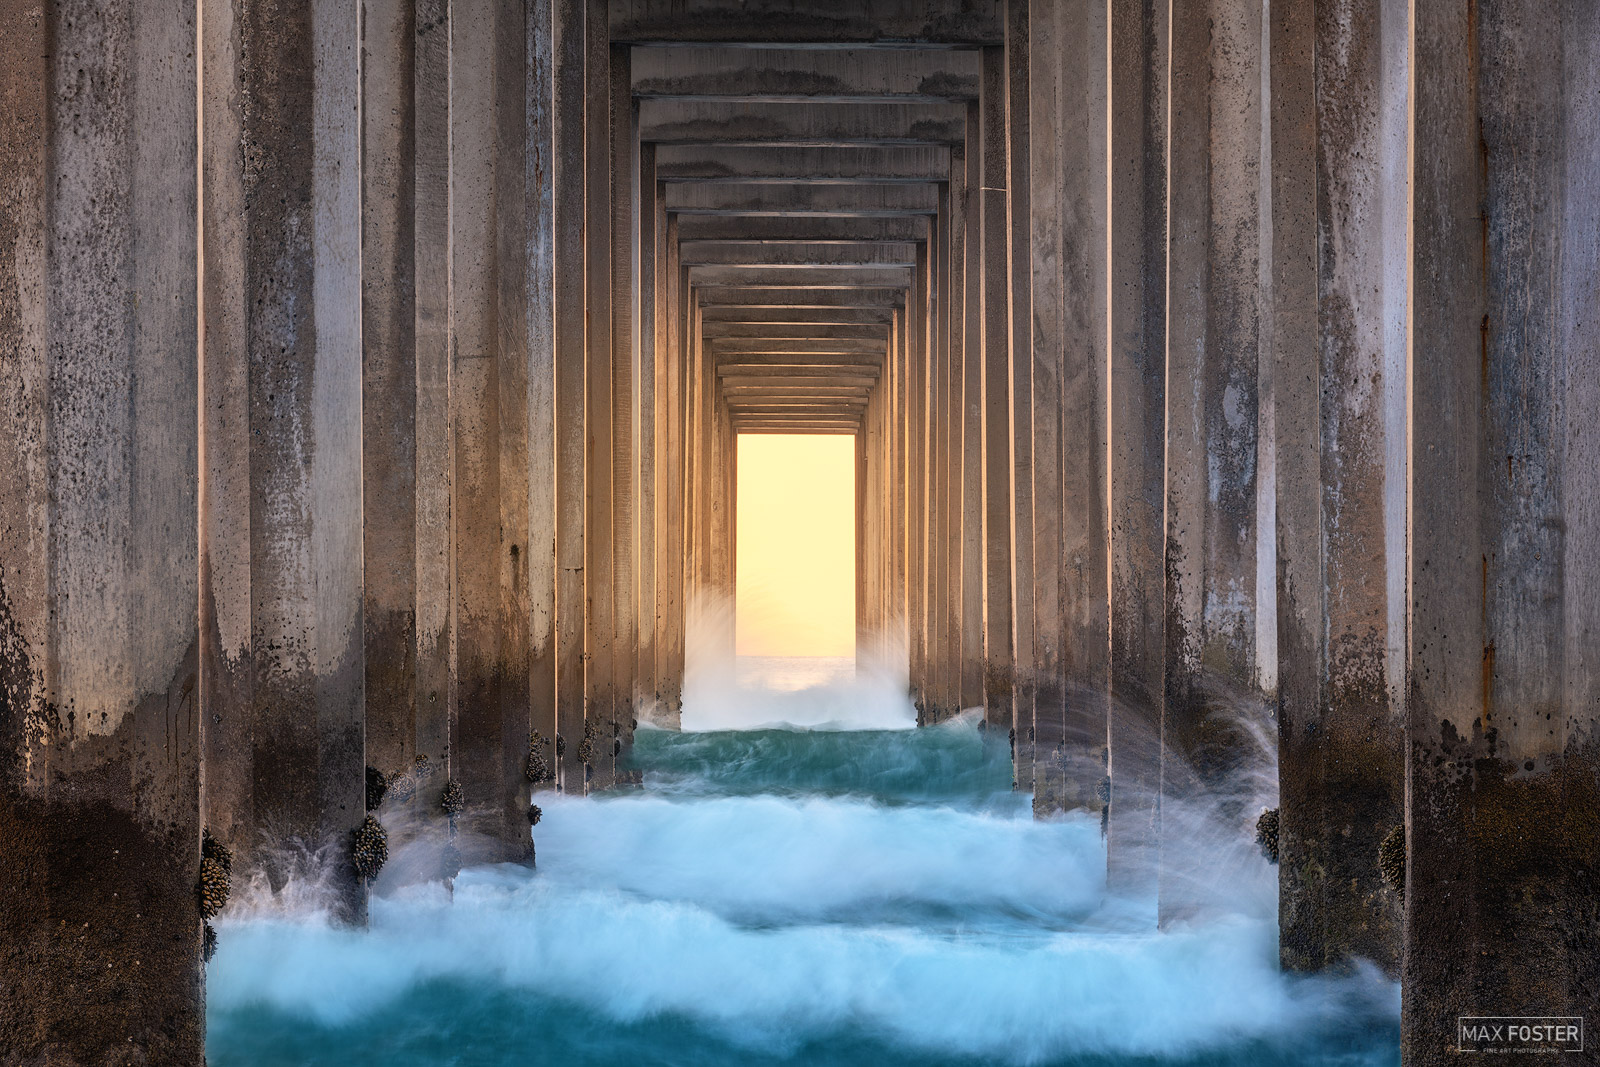 Fine Art Limited Edition of 100 This image is taken at the world-famous Scripps Pier located at the Scripps Institute of Oceanography...